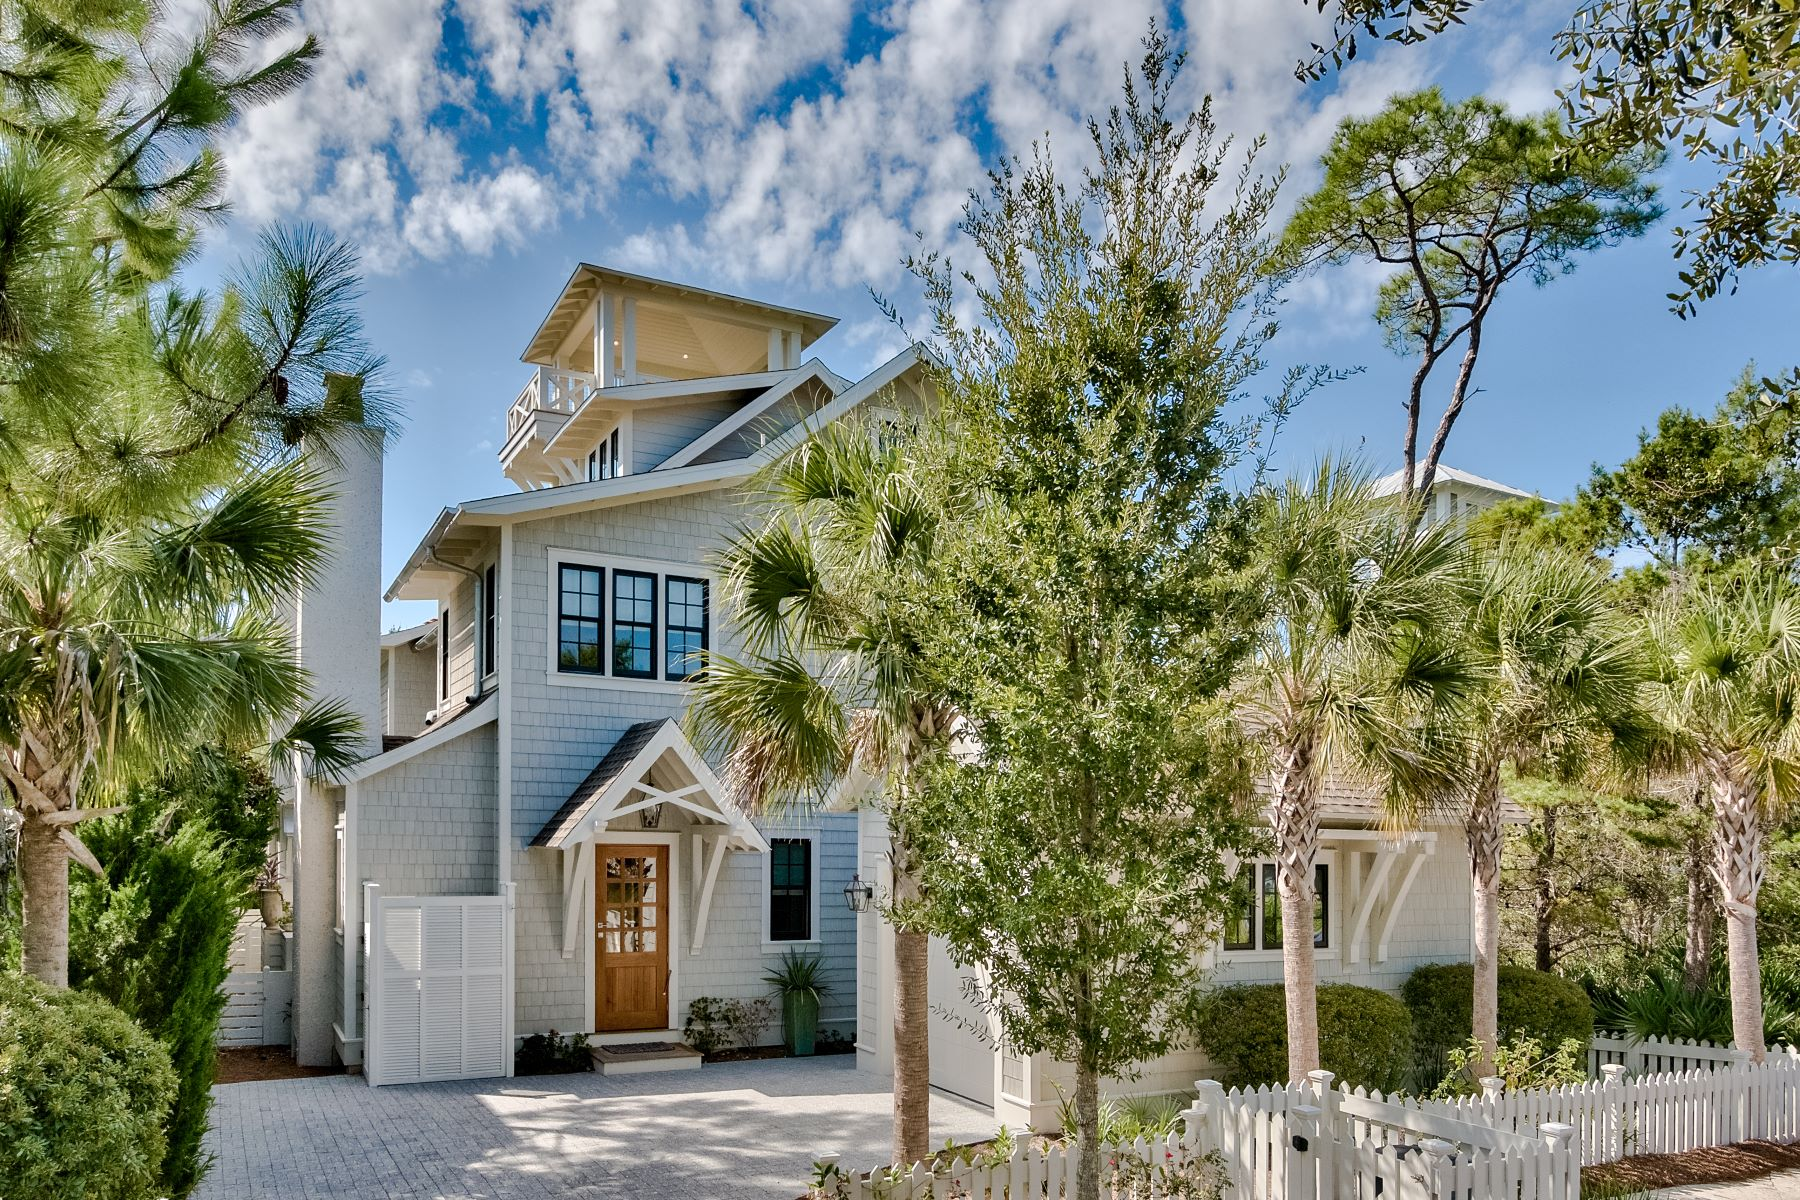 Single Family Homes for Sale at Bespoke Beach Home with Pool South of Scenic 30A 140 E Yacht Pond Lane Watersound, Florida 32461 United States